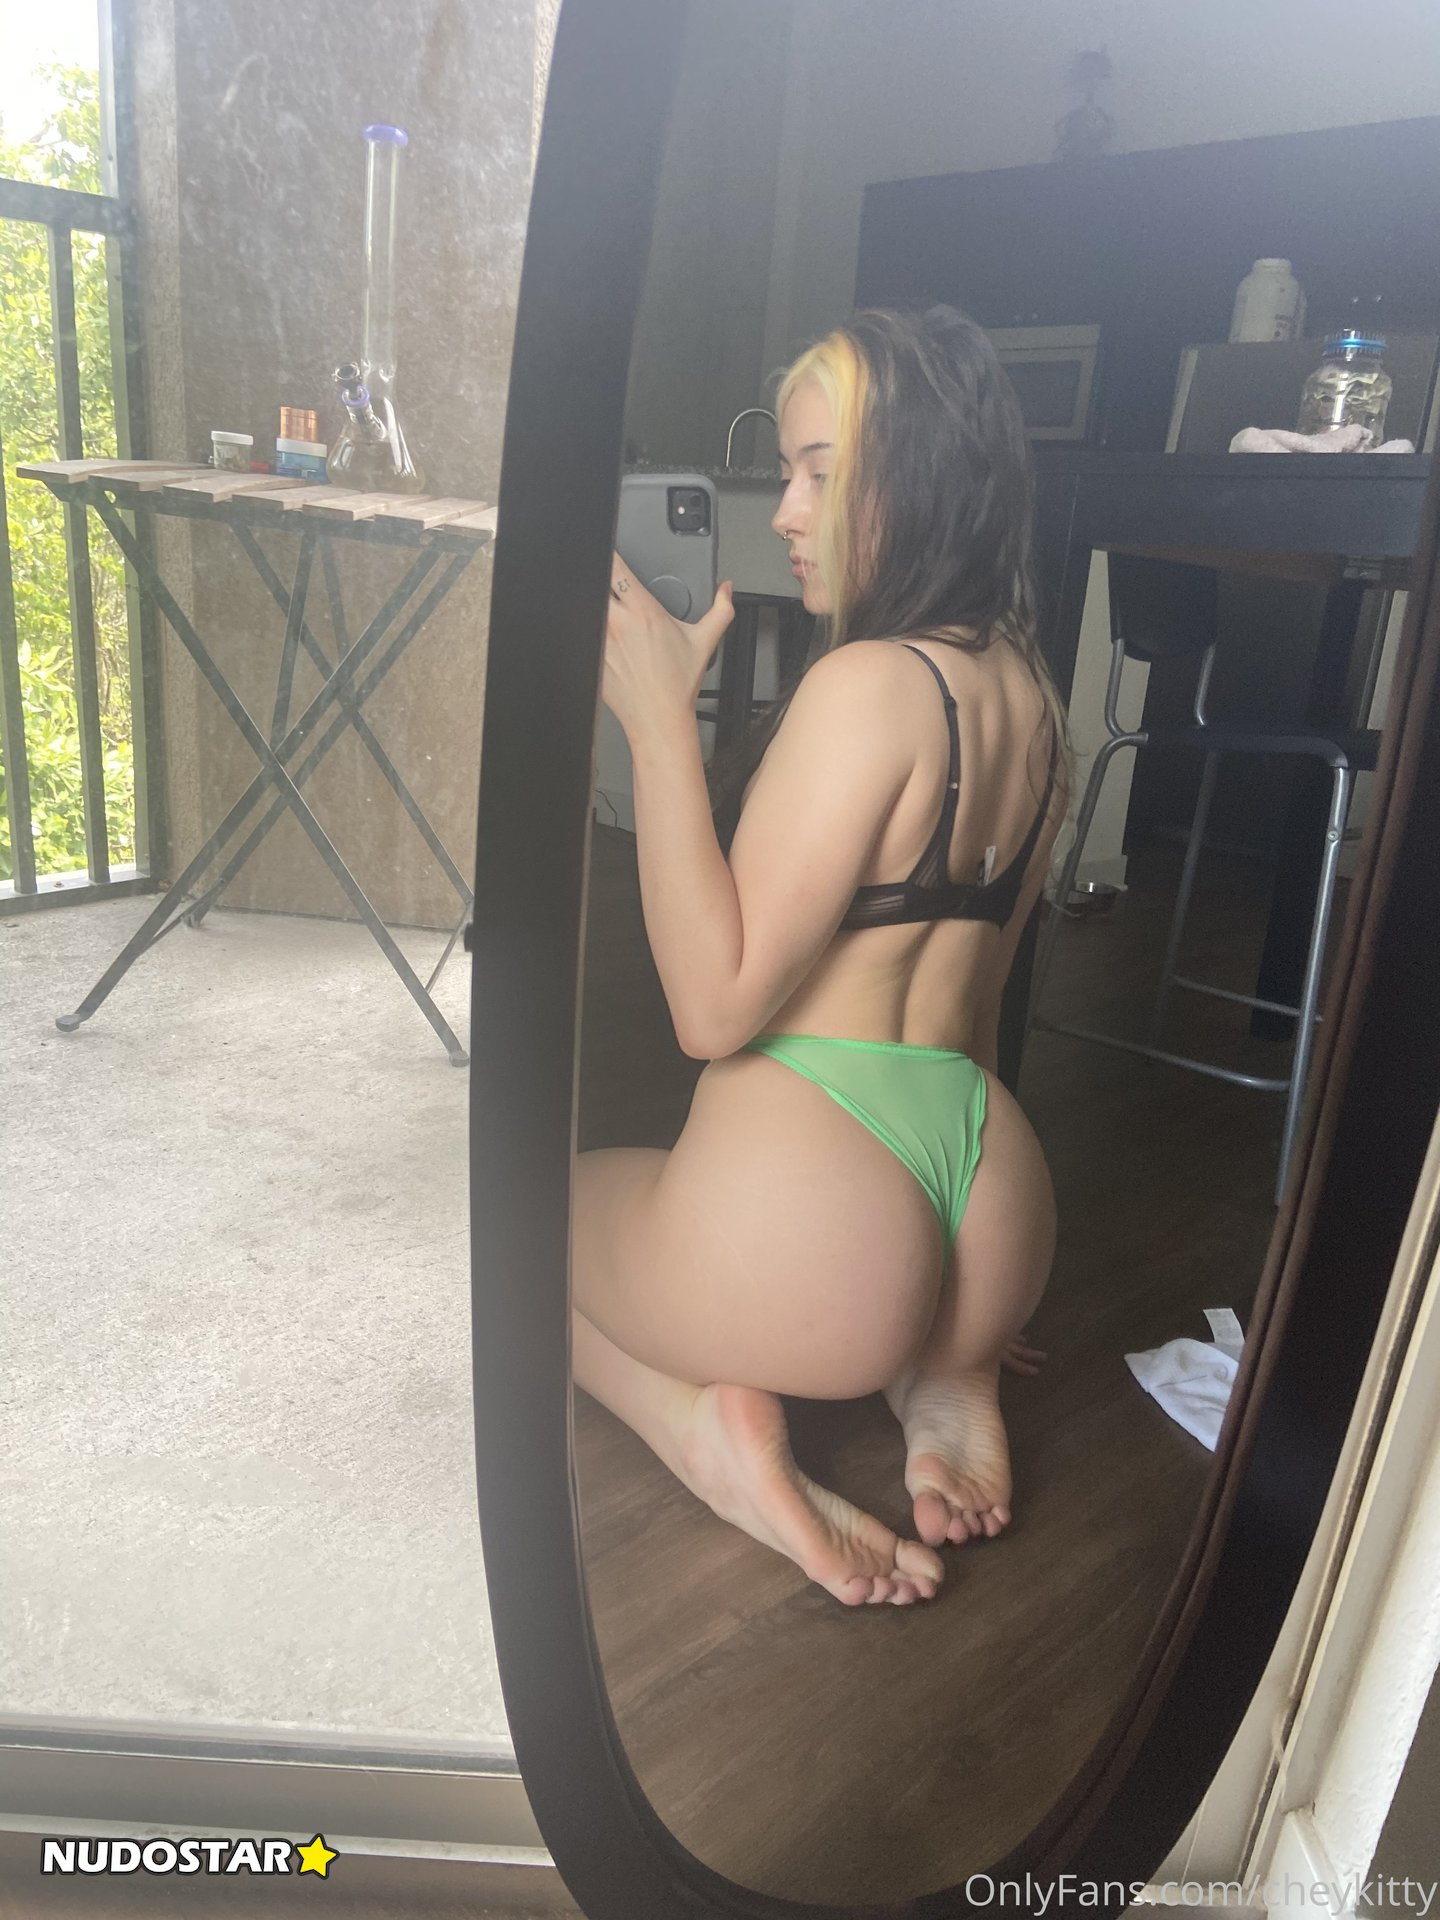 CheyKitty OnlyFans Nude Leaks (27 Photos)